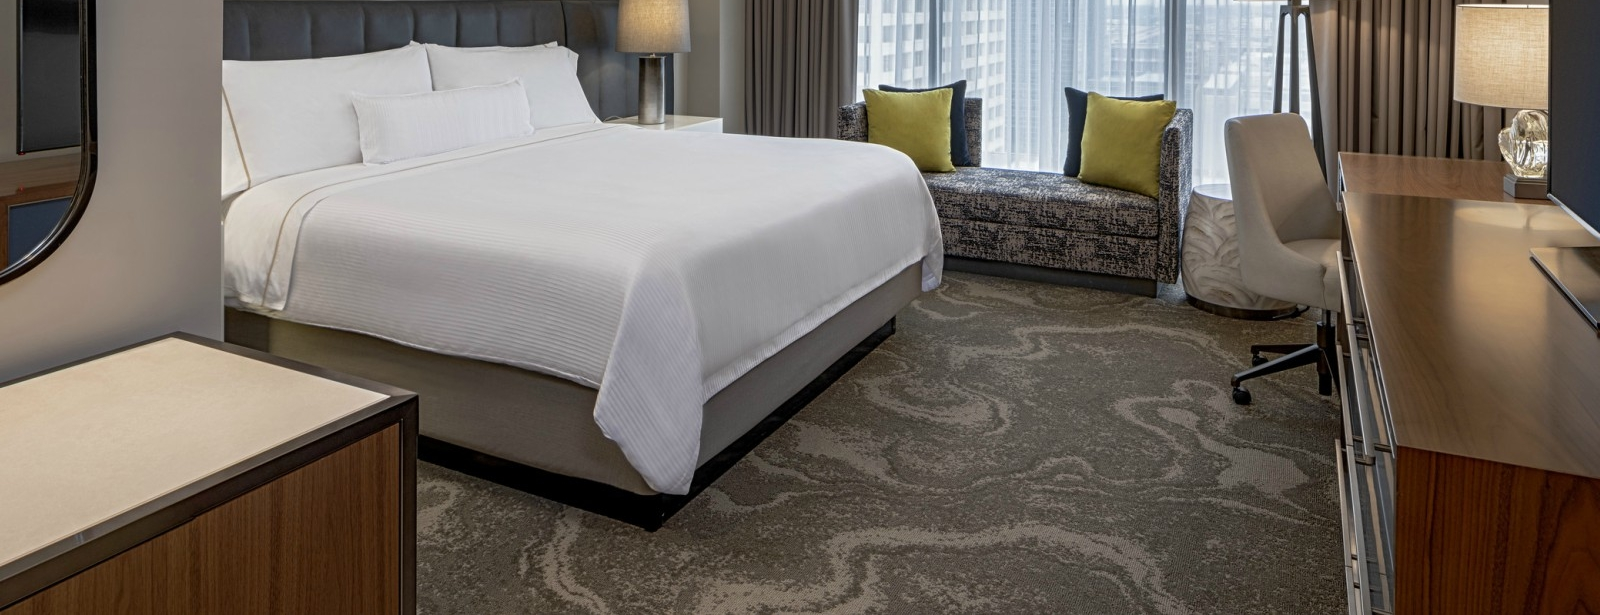 Hotel Accommodations in Houston - The Westin Oaks Houston at the Galleria